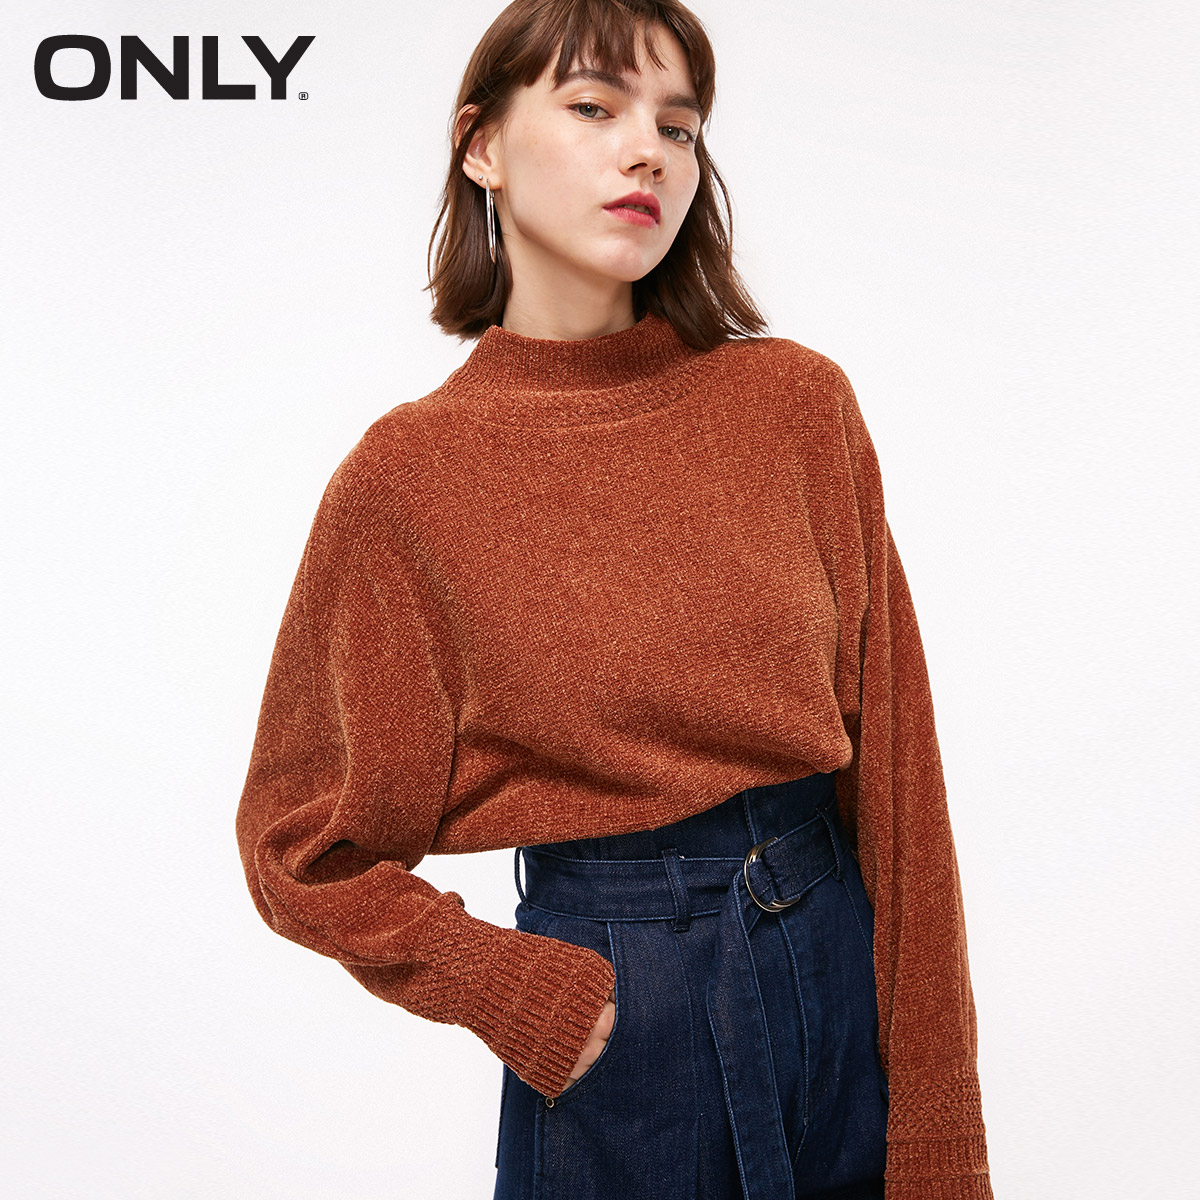 ONLY  Autumn Winter Women's Loose Fit Long-sleeved Pullover Knit  |  118313502